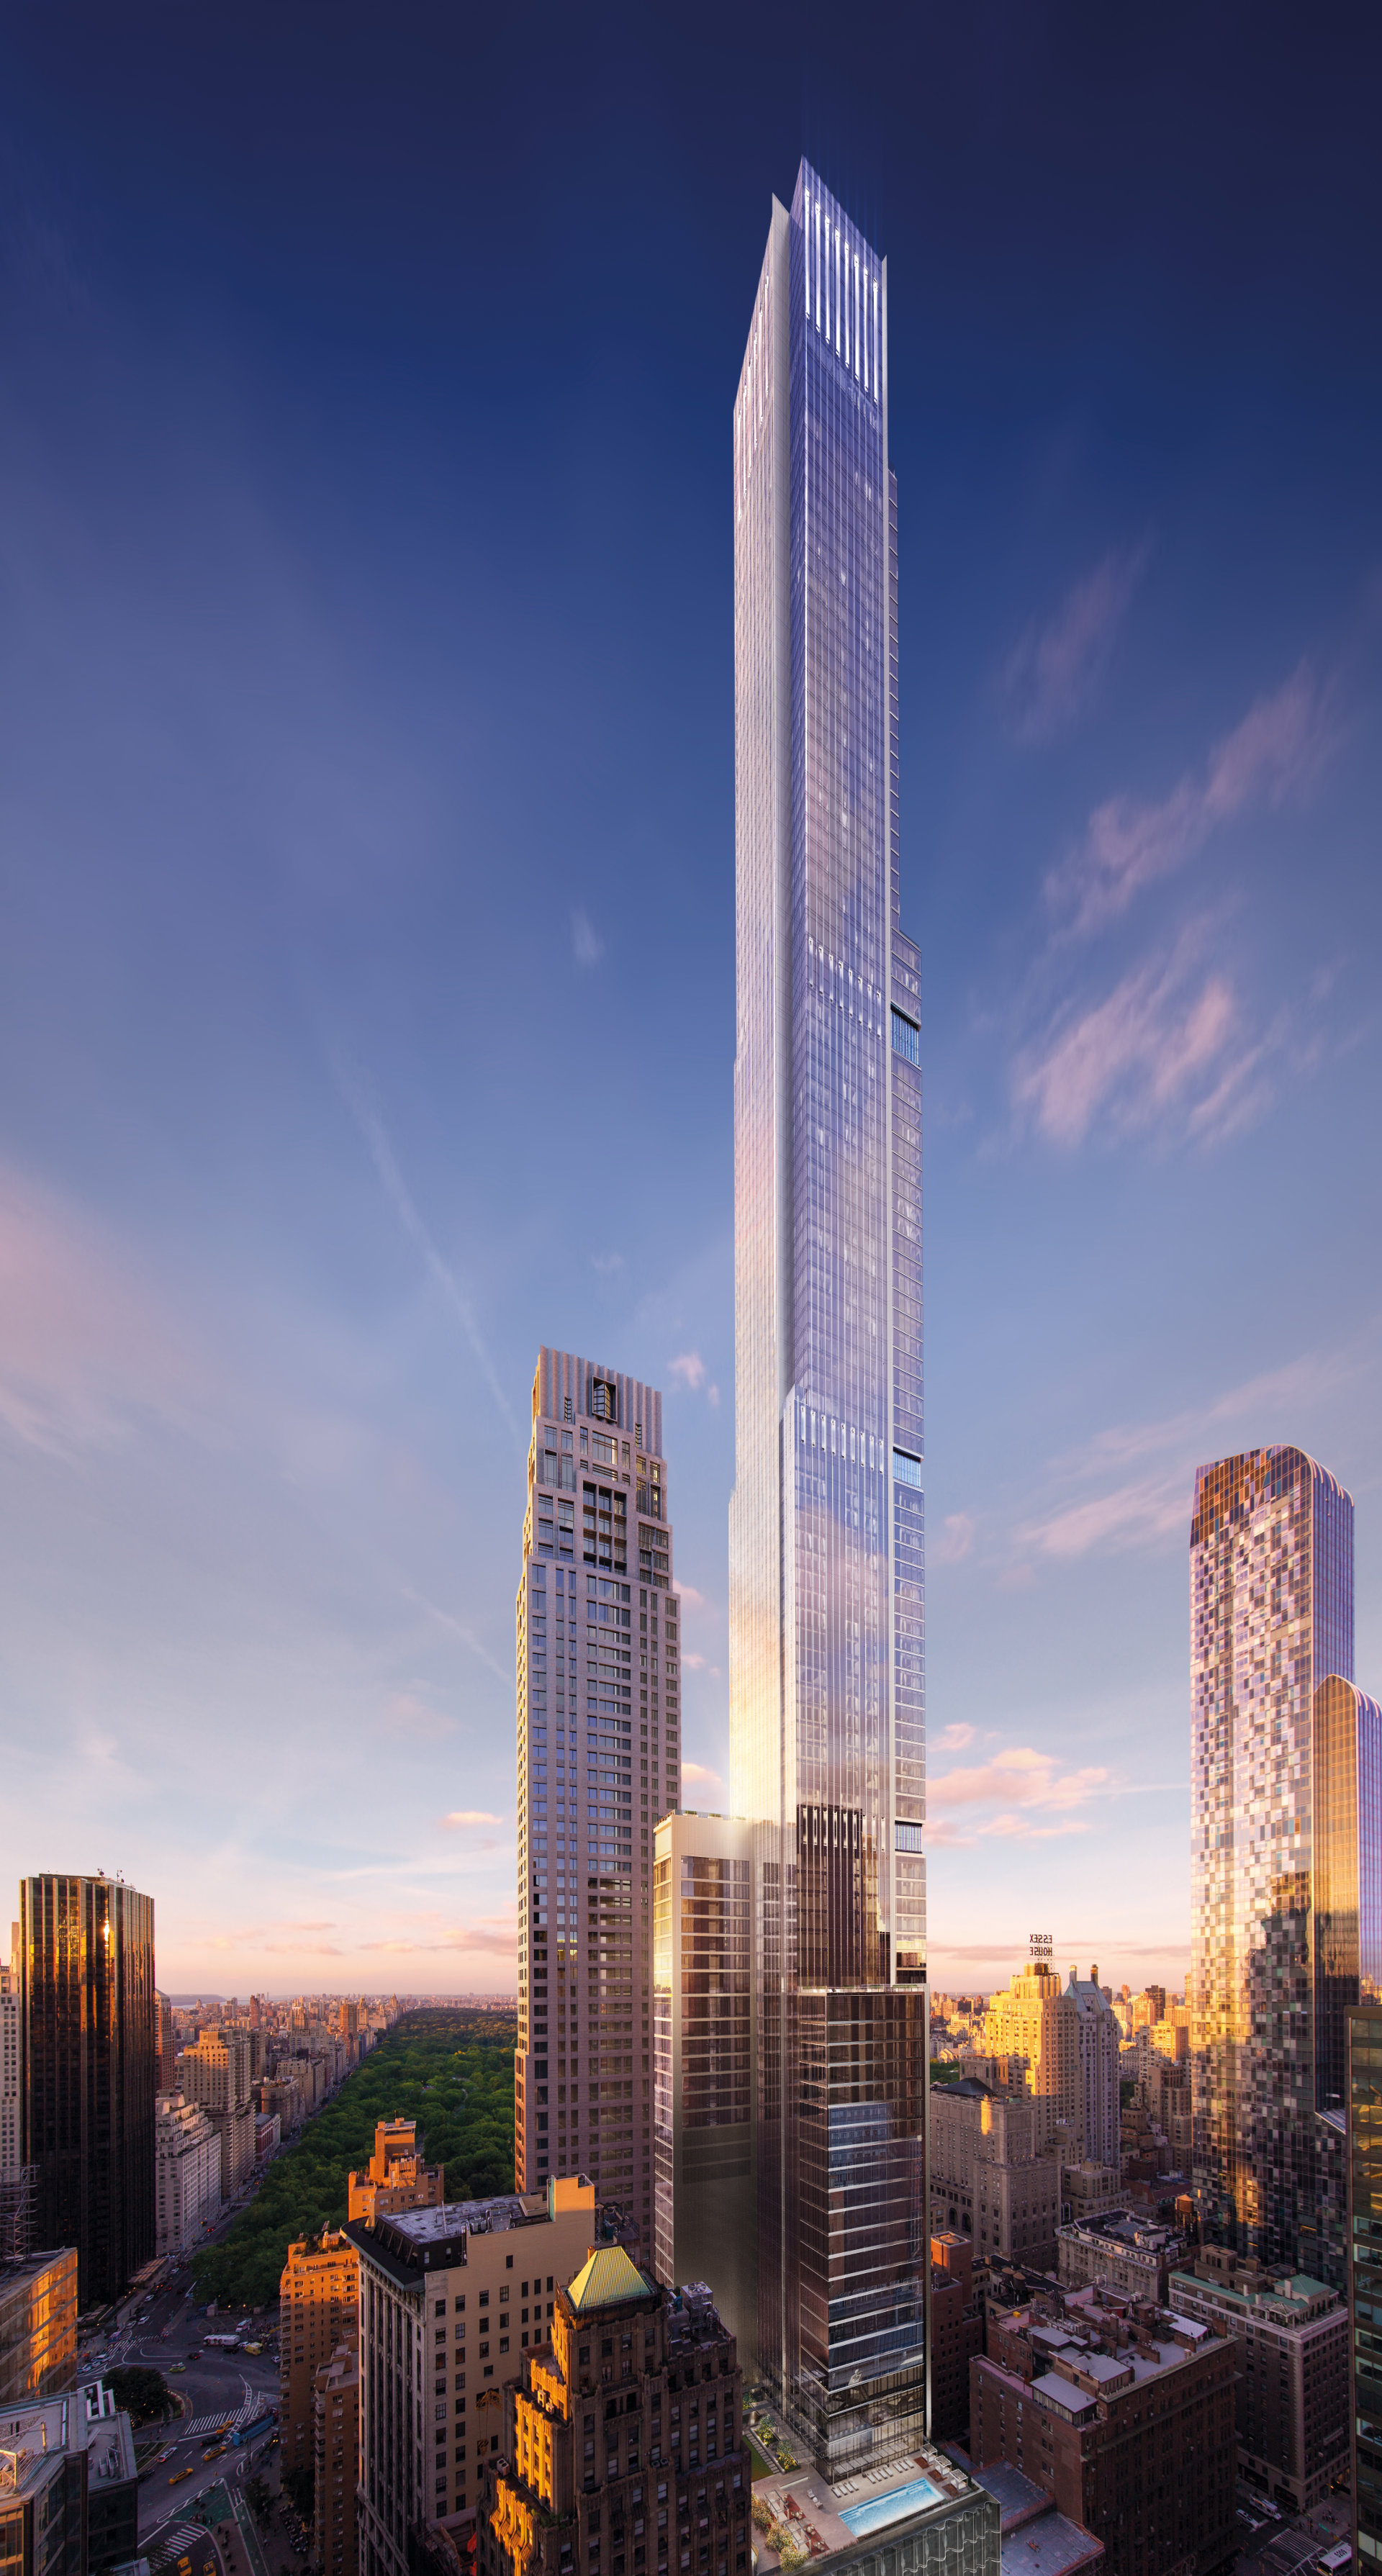 Central Park Tower Surpasses Chicago S Willis Tower On Way